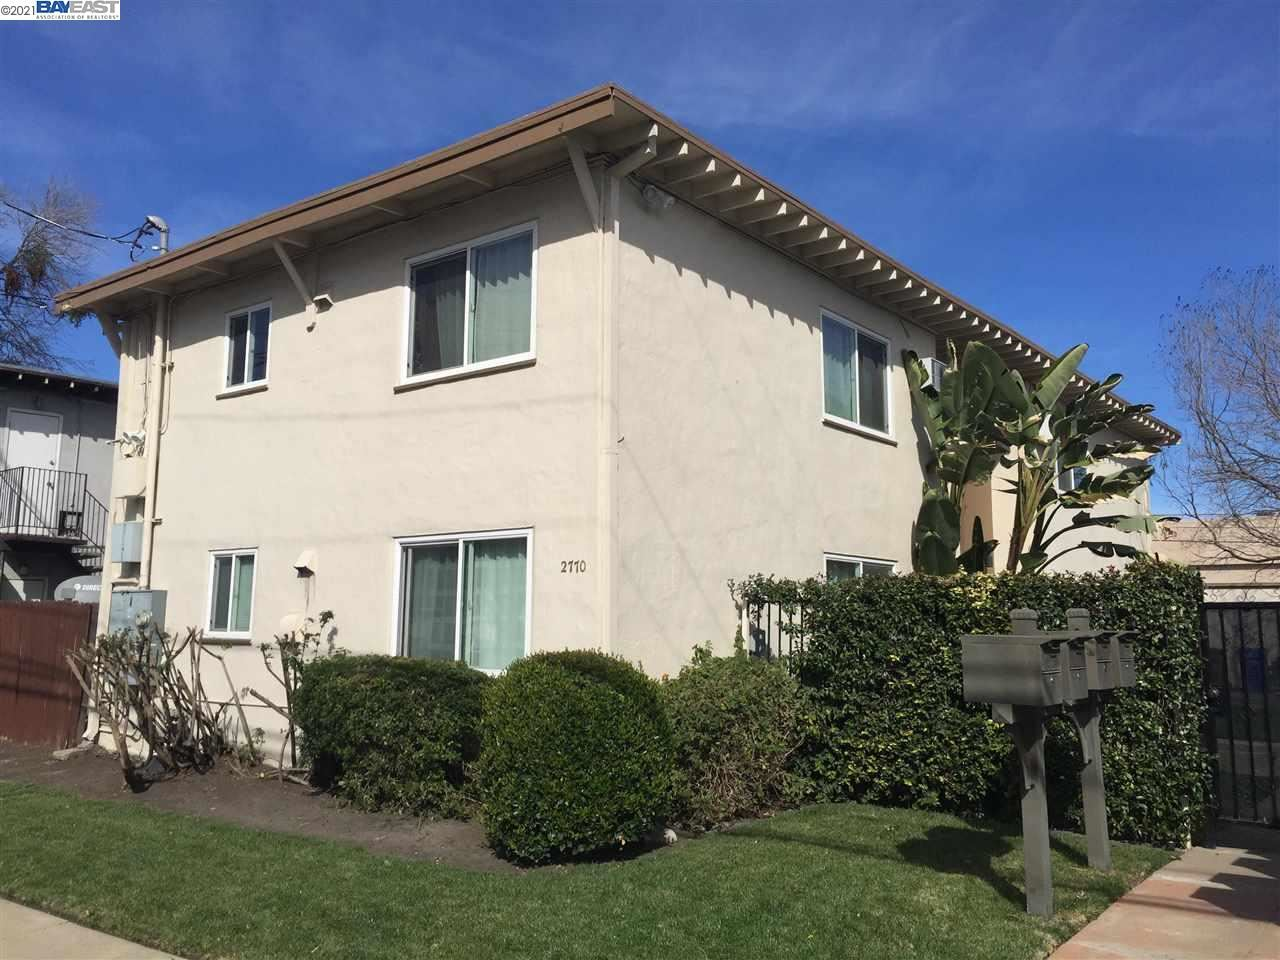 Photo of 2770 Argyll Ave, CONCORD, CA 94520 (MLS # 40947492)